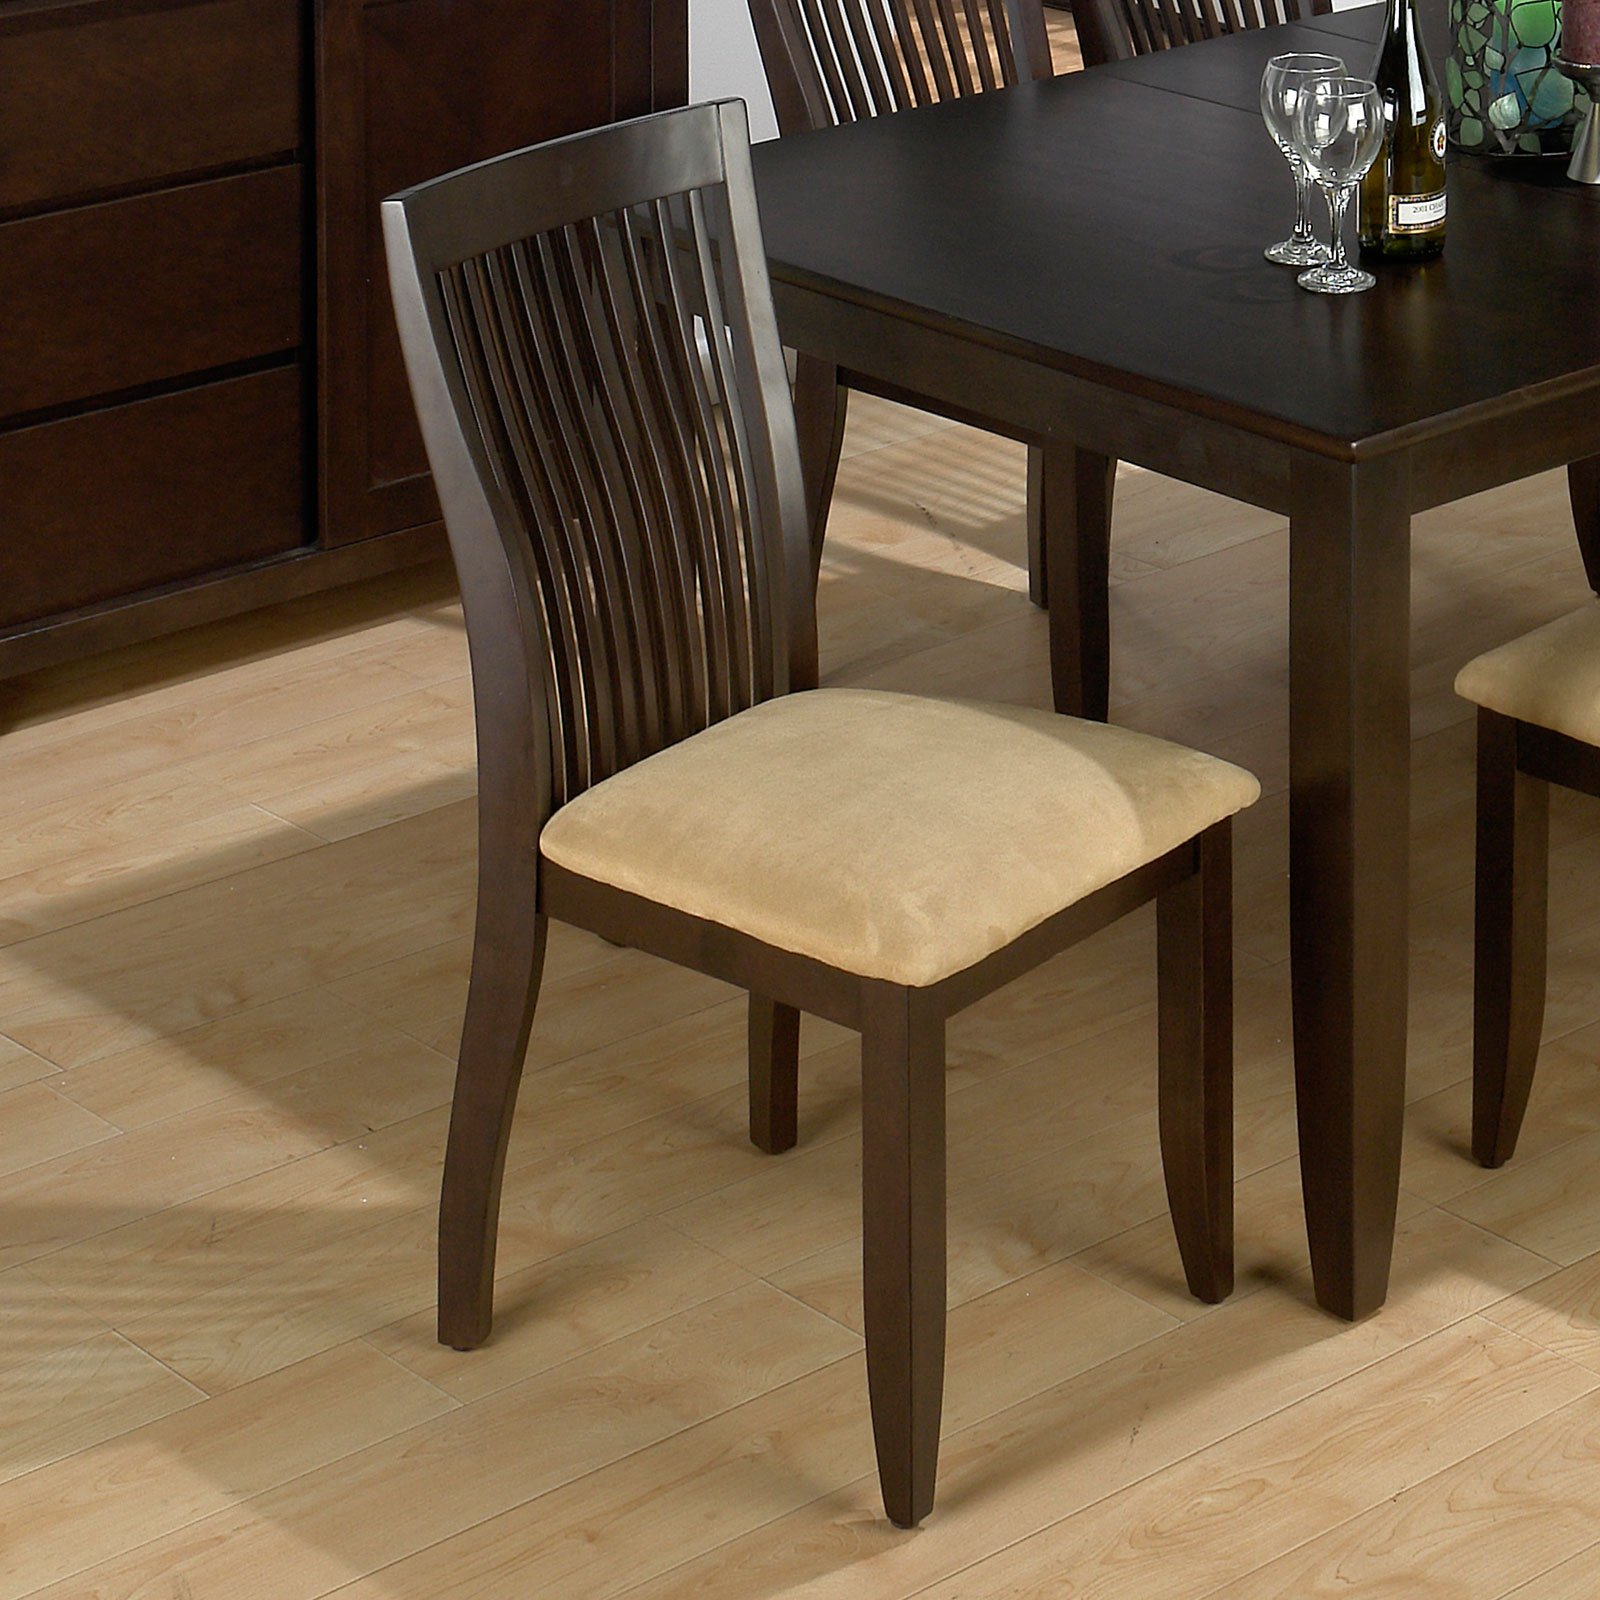 Jofran William Dining Chair - 2 Chairs